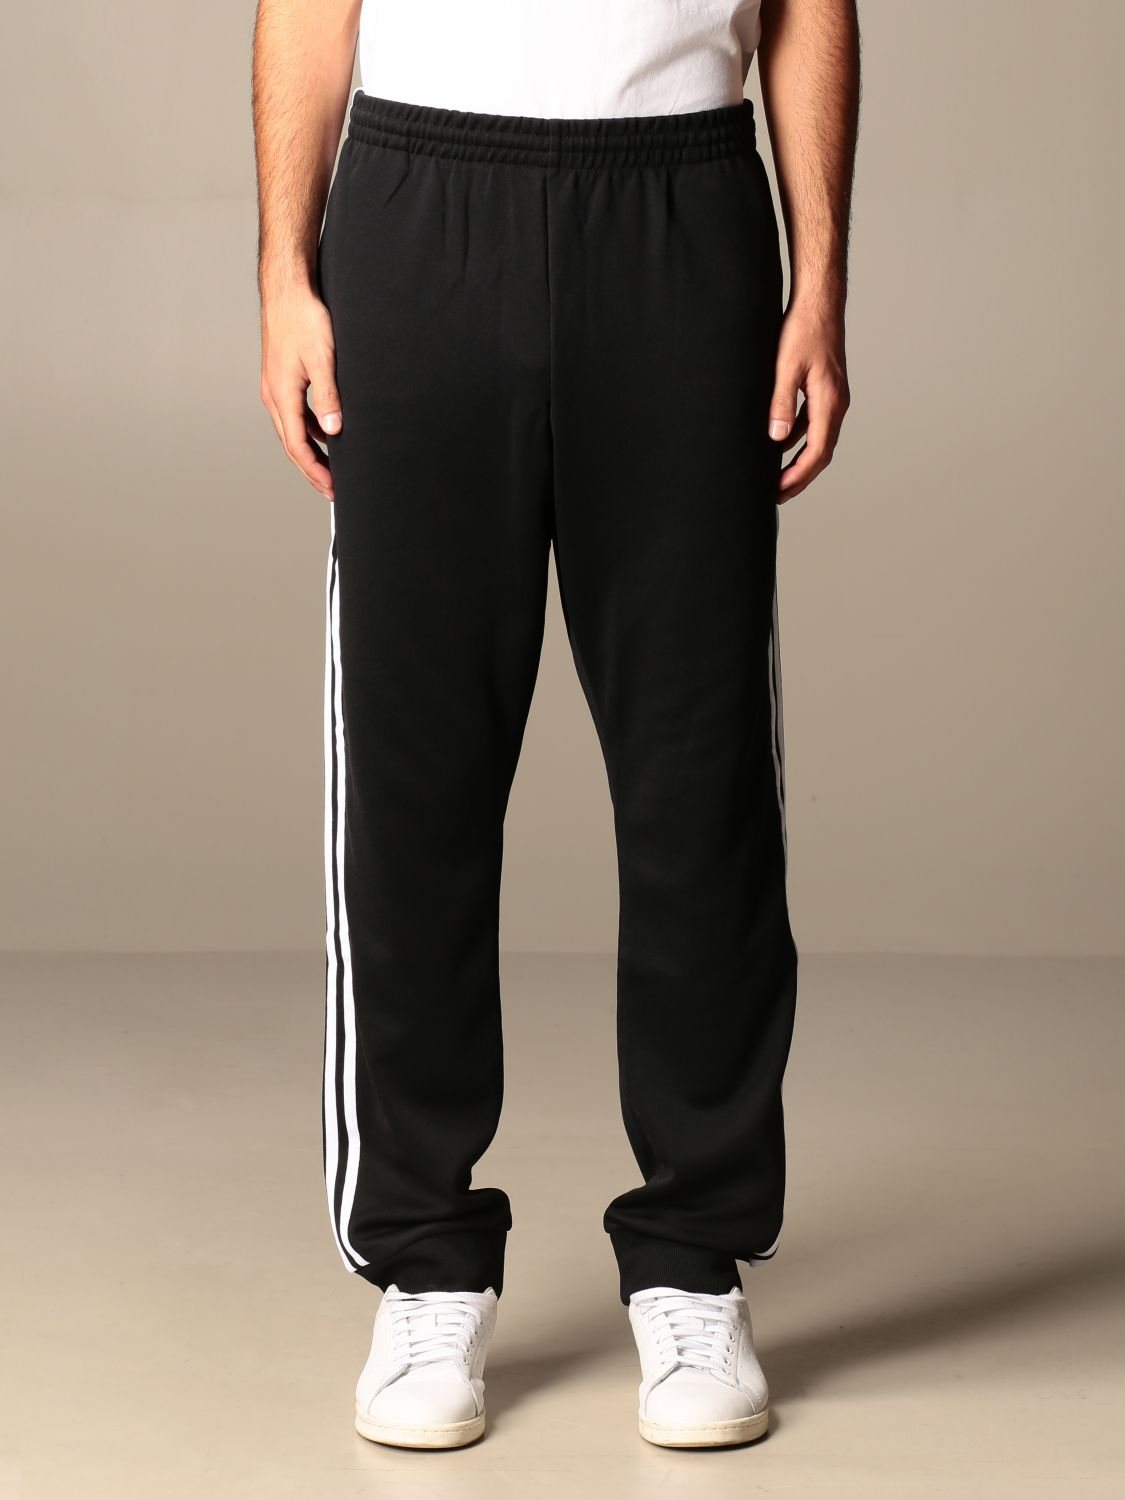 Trousers Adidas Originals: Trousers men Adidas Originals black 1